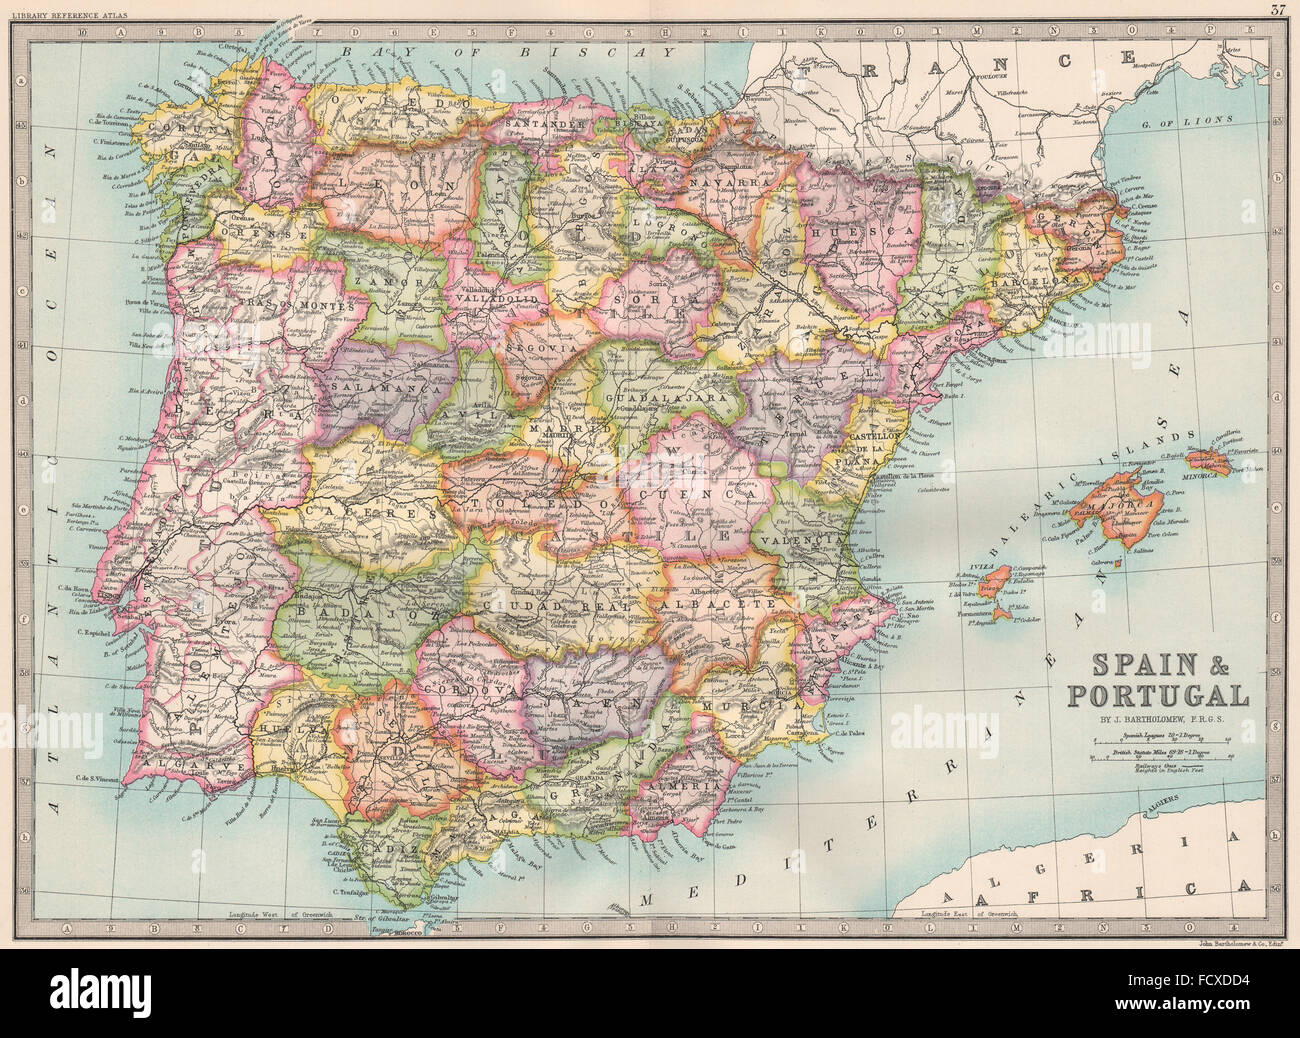 Spain Map Of Provinces.Iberia Spain Portugal Provinces Bartholomew 1890 Antique Map